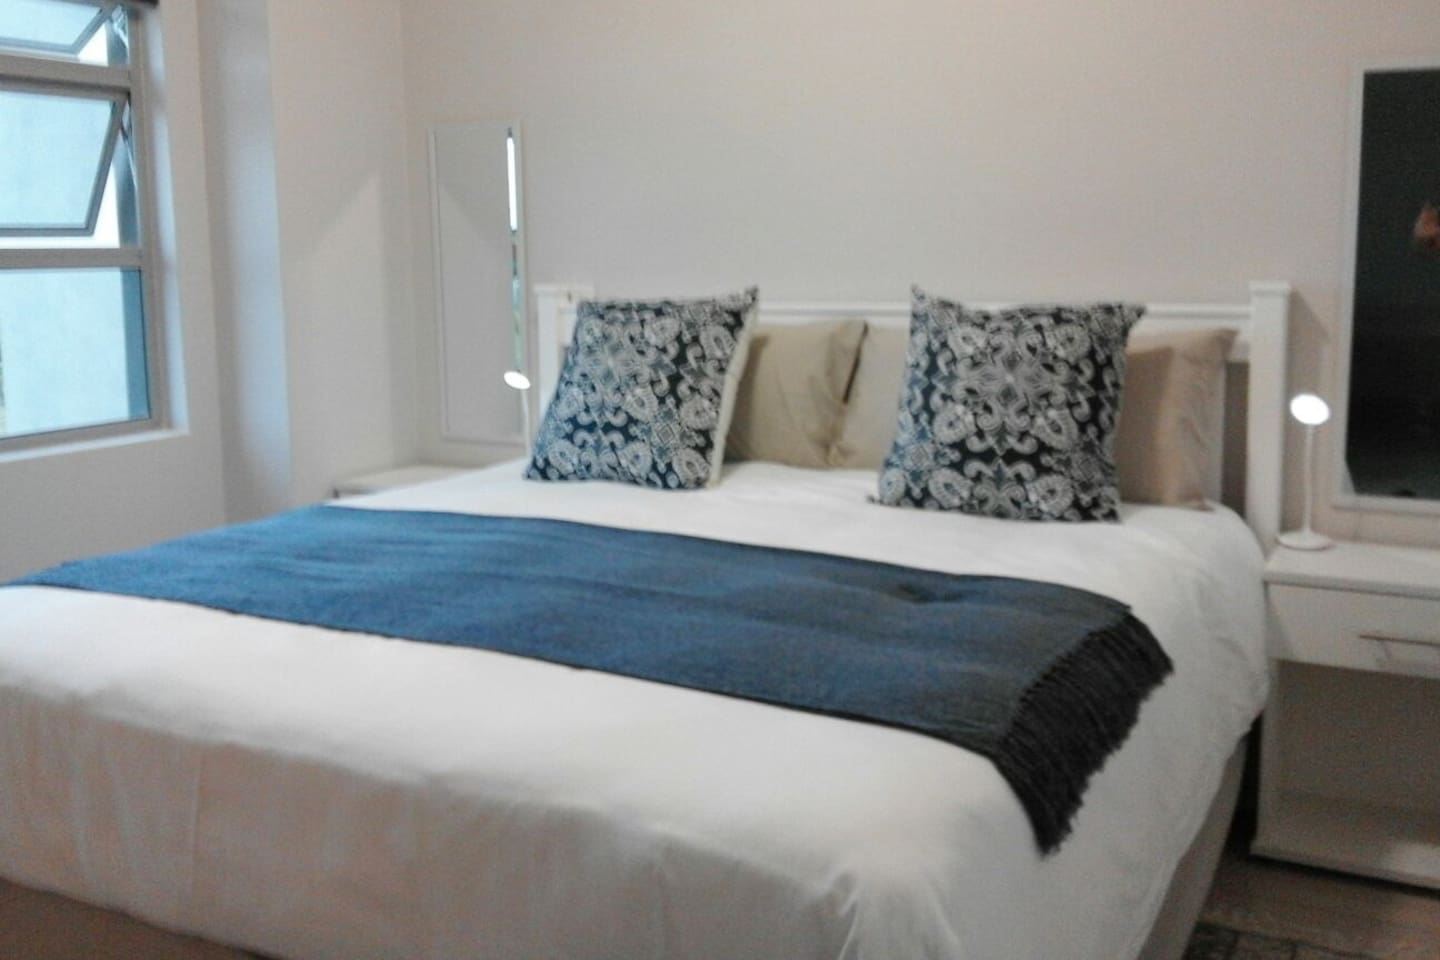 XL King Size bed. So so comfortable, with added luxury of percale linen.